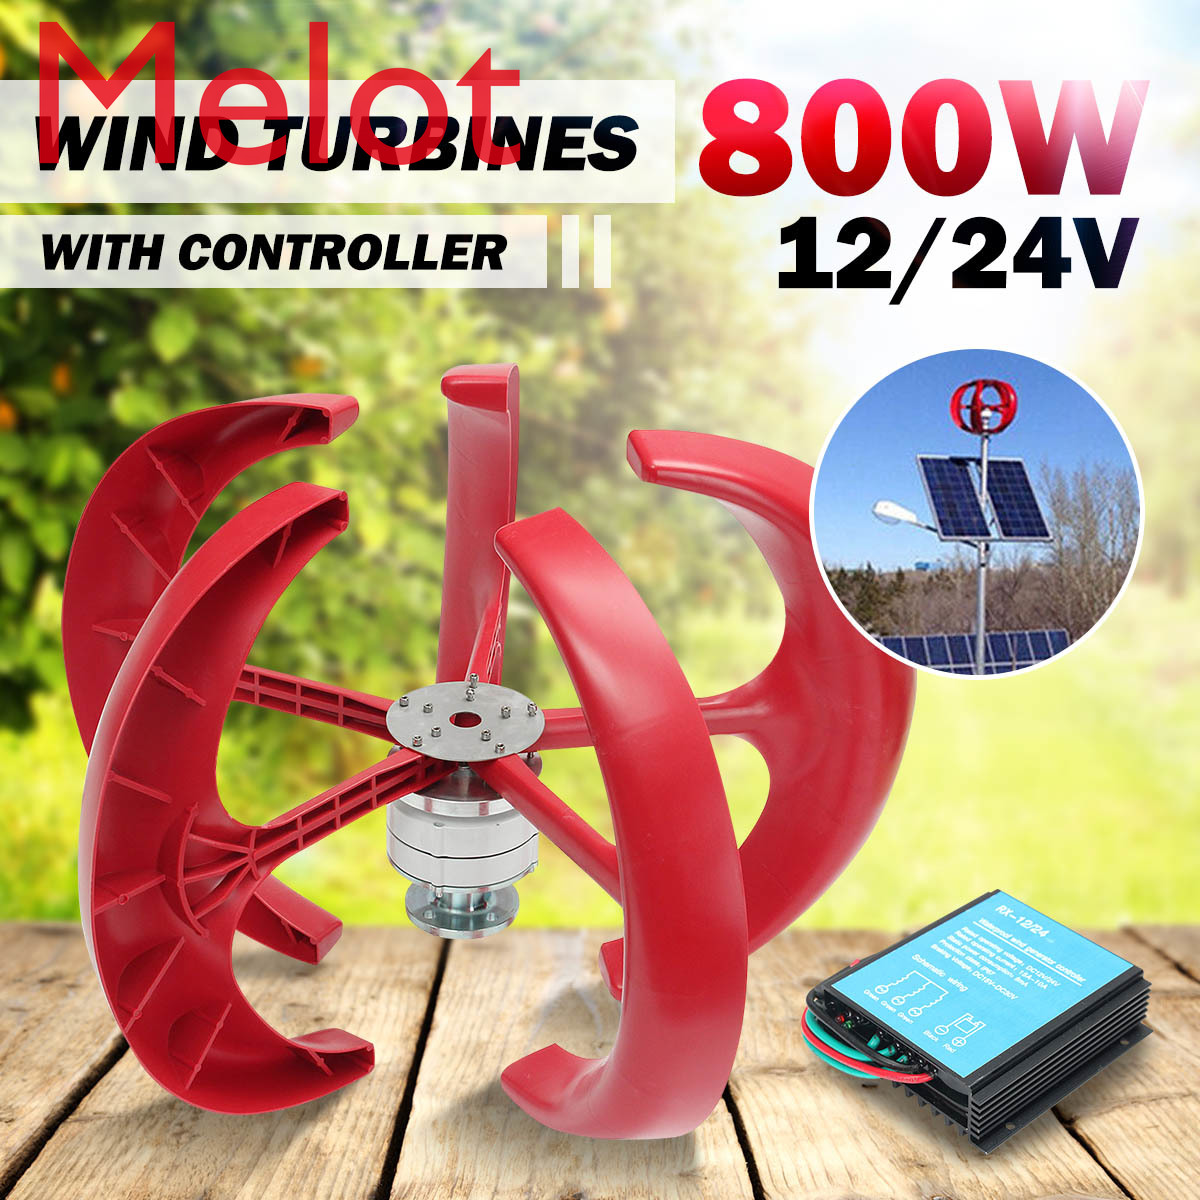 <font><b>800W</b></font> 12V/24V <font><b>Wind</b></font> Power <font><b>Generator</b></font> Vertical <font><b>Wind</b></font> T urbine Lantern 5 Blades Motor with controller for home streelight Hy brid use image